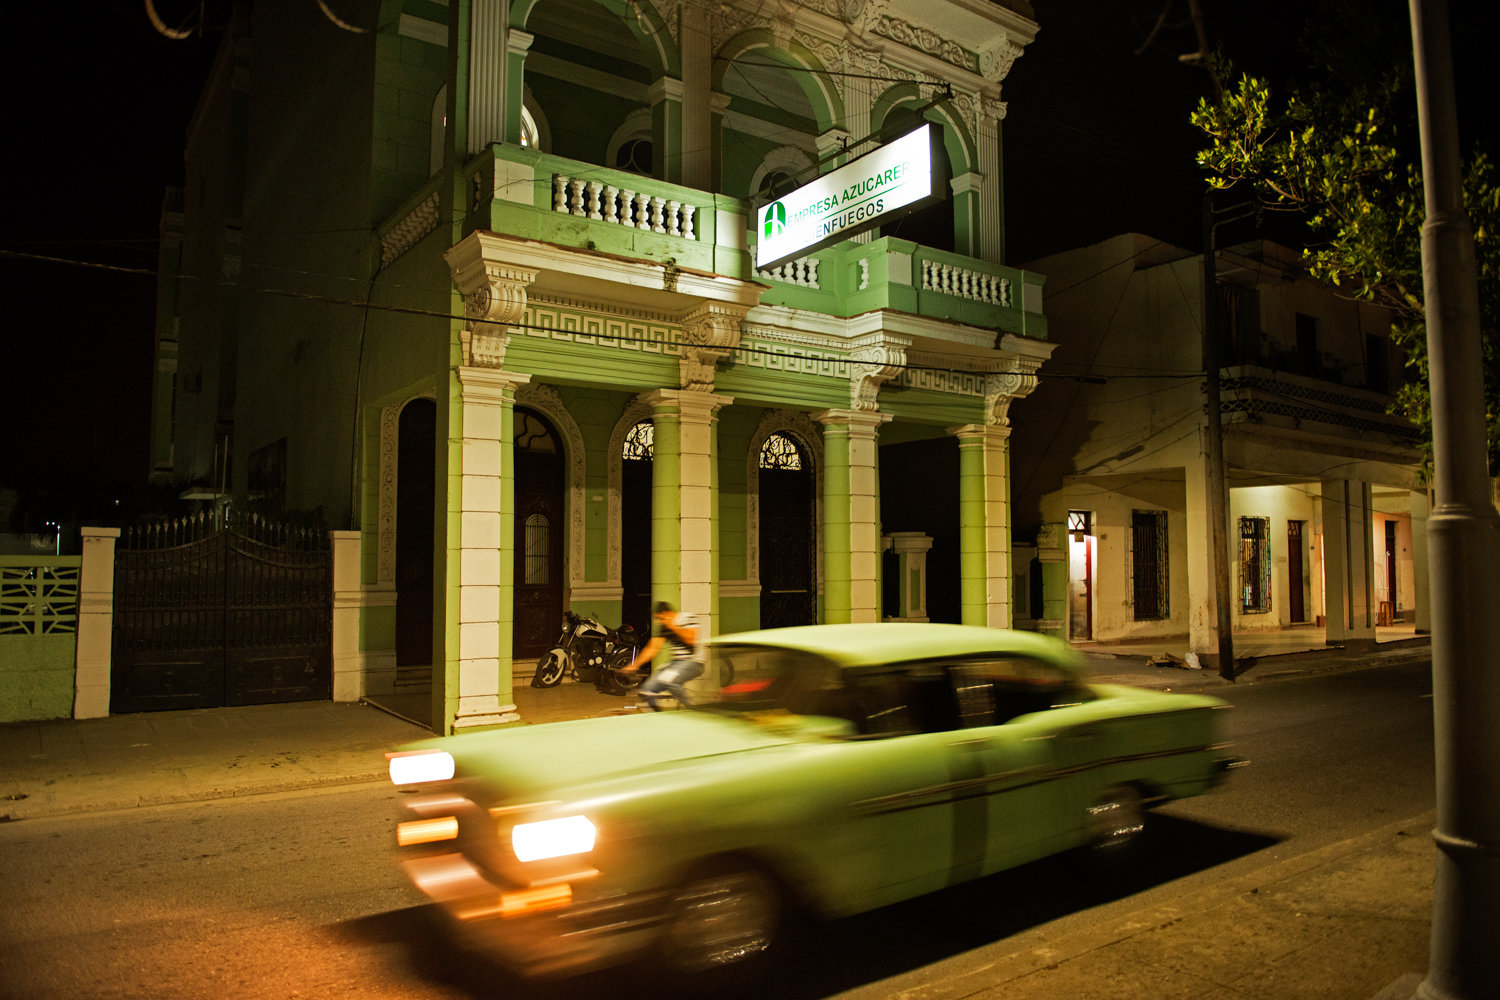 John Conn's late-night image of a street scene in Cuba is included in the exhibition 'Picture This,' on display at Elisa Contemporary Art through Jan. 15.